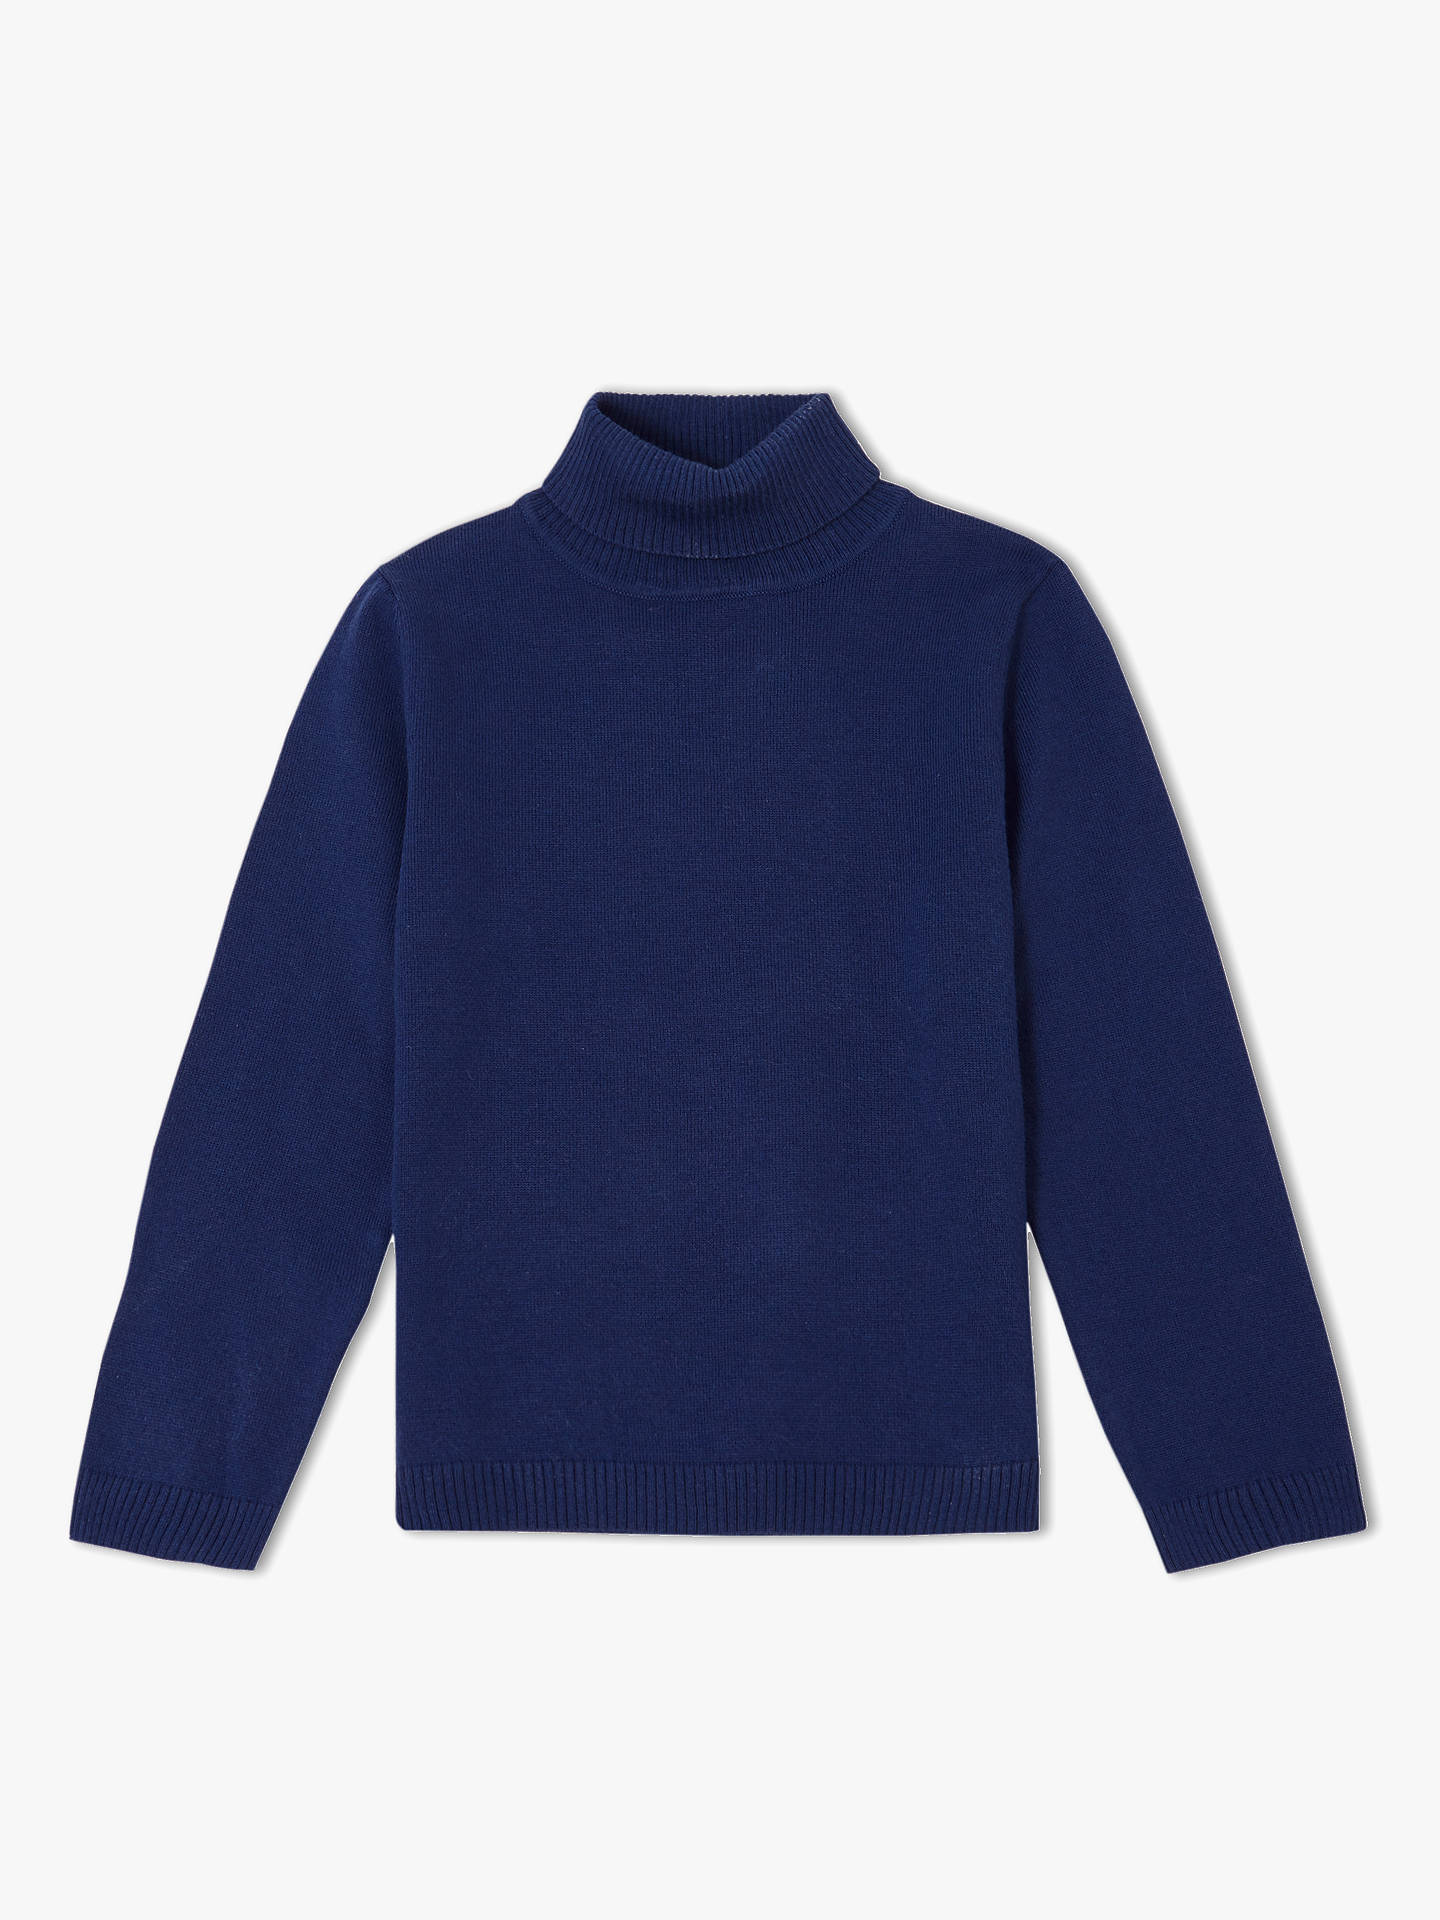 Buy John Lewis & Partners Girls' Roll Neck Jumper, Navy, 2 years Online at johnlewis.com